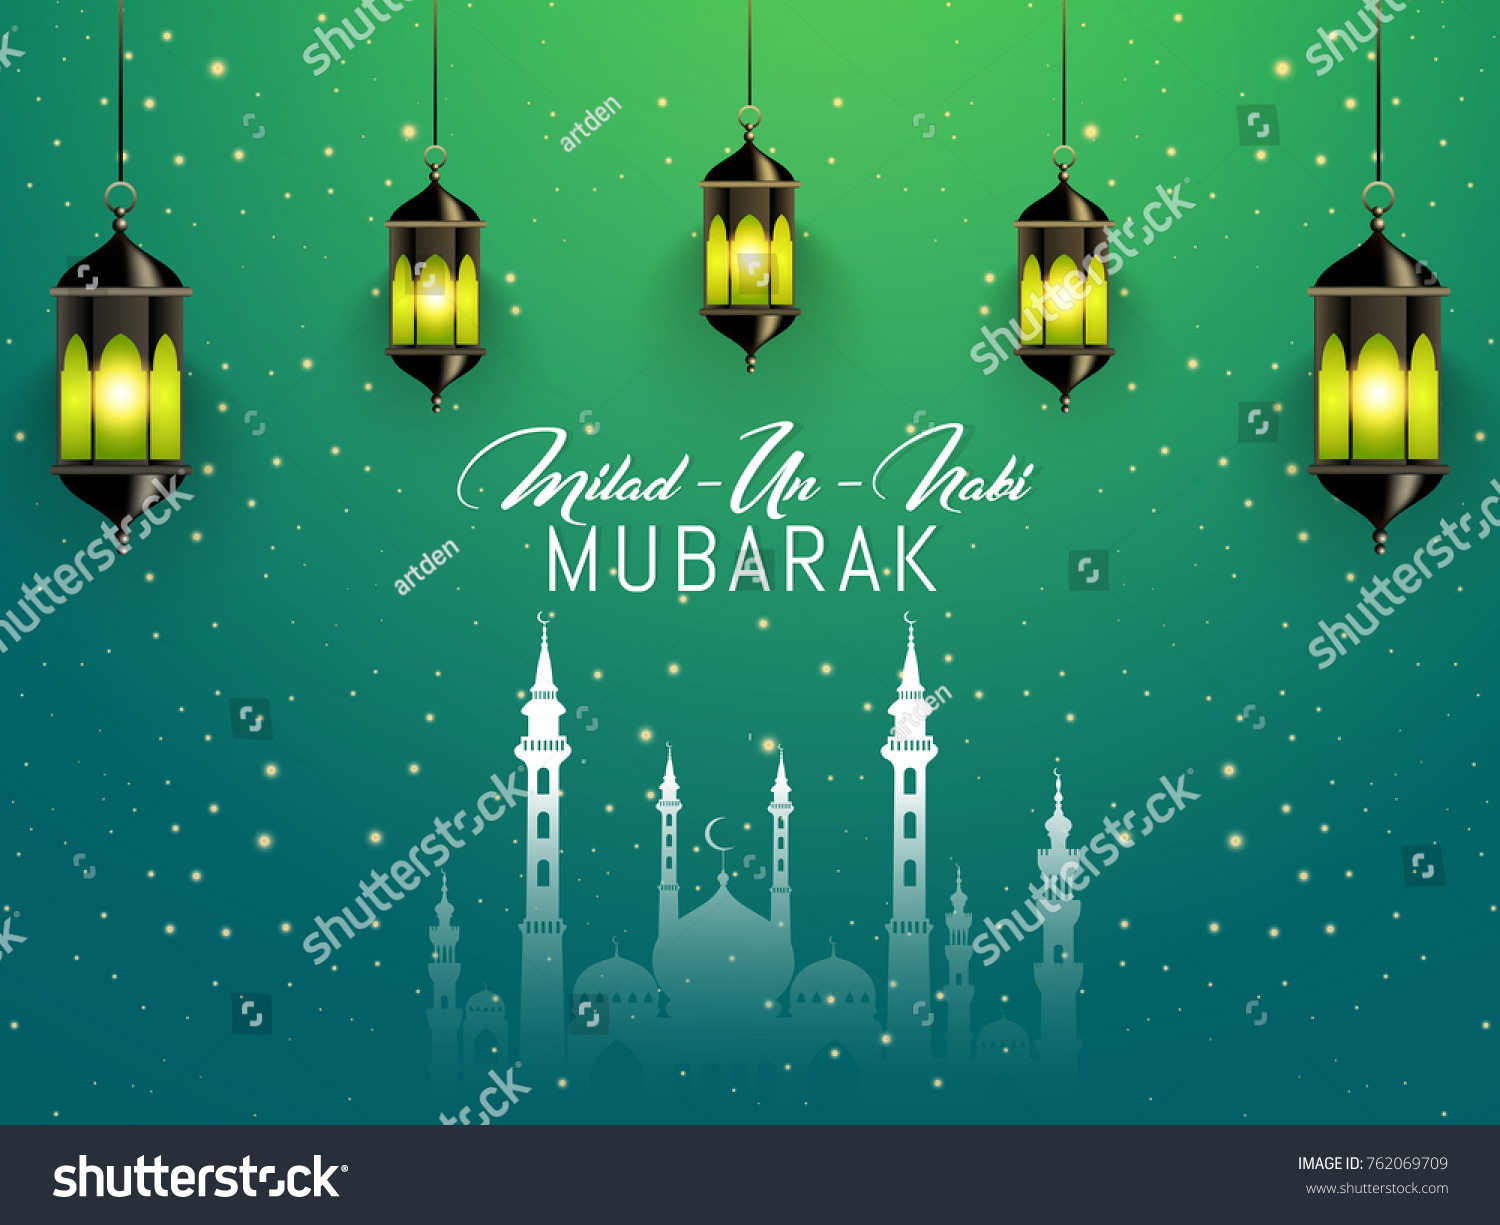 Top Milad Eid Al-Fitr Decorations - stock-vector-nice-and-beautiful-abstract-for-milad-un-nabi-mubarak-with-nice-and-creative-design-illustration-762069709  Snapshot_89721 .jpg